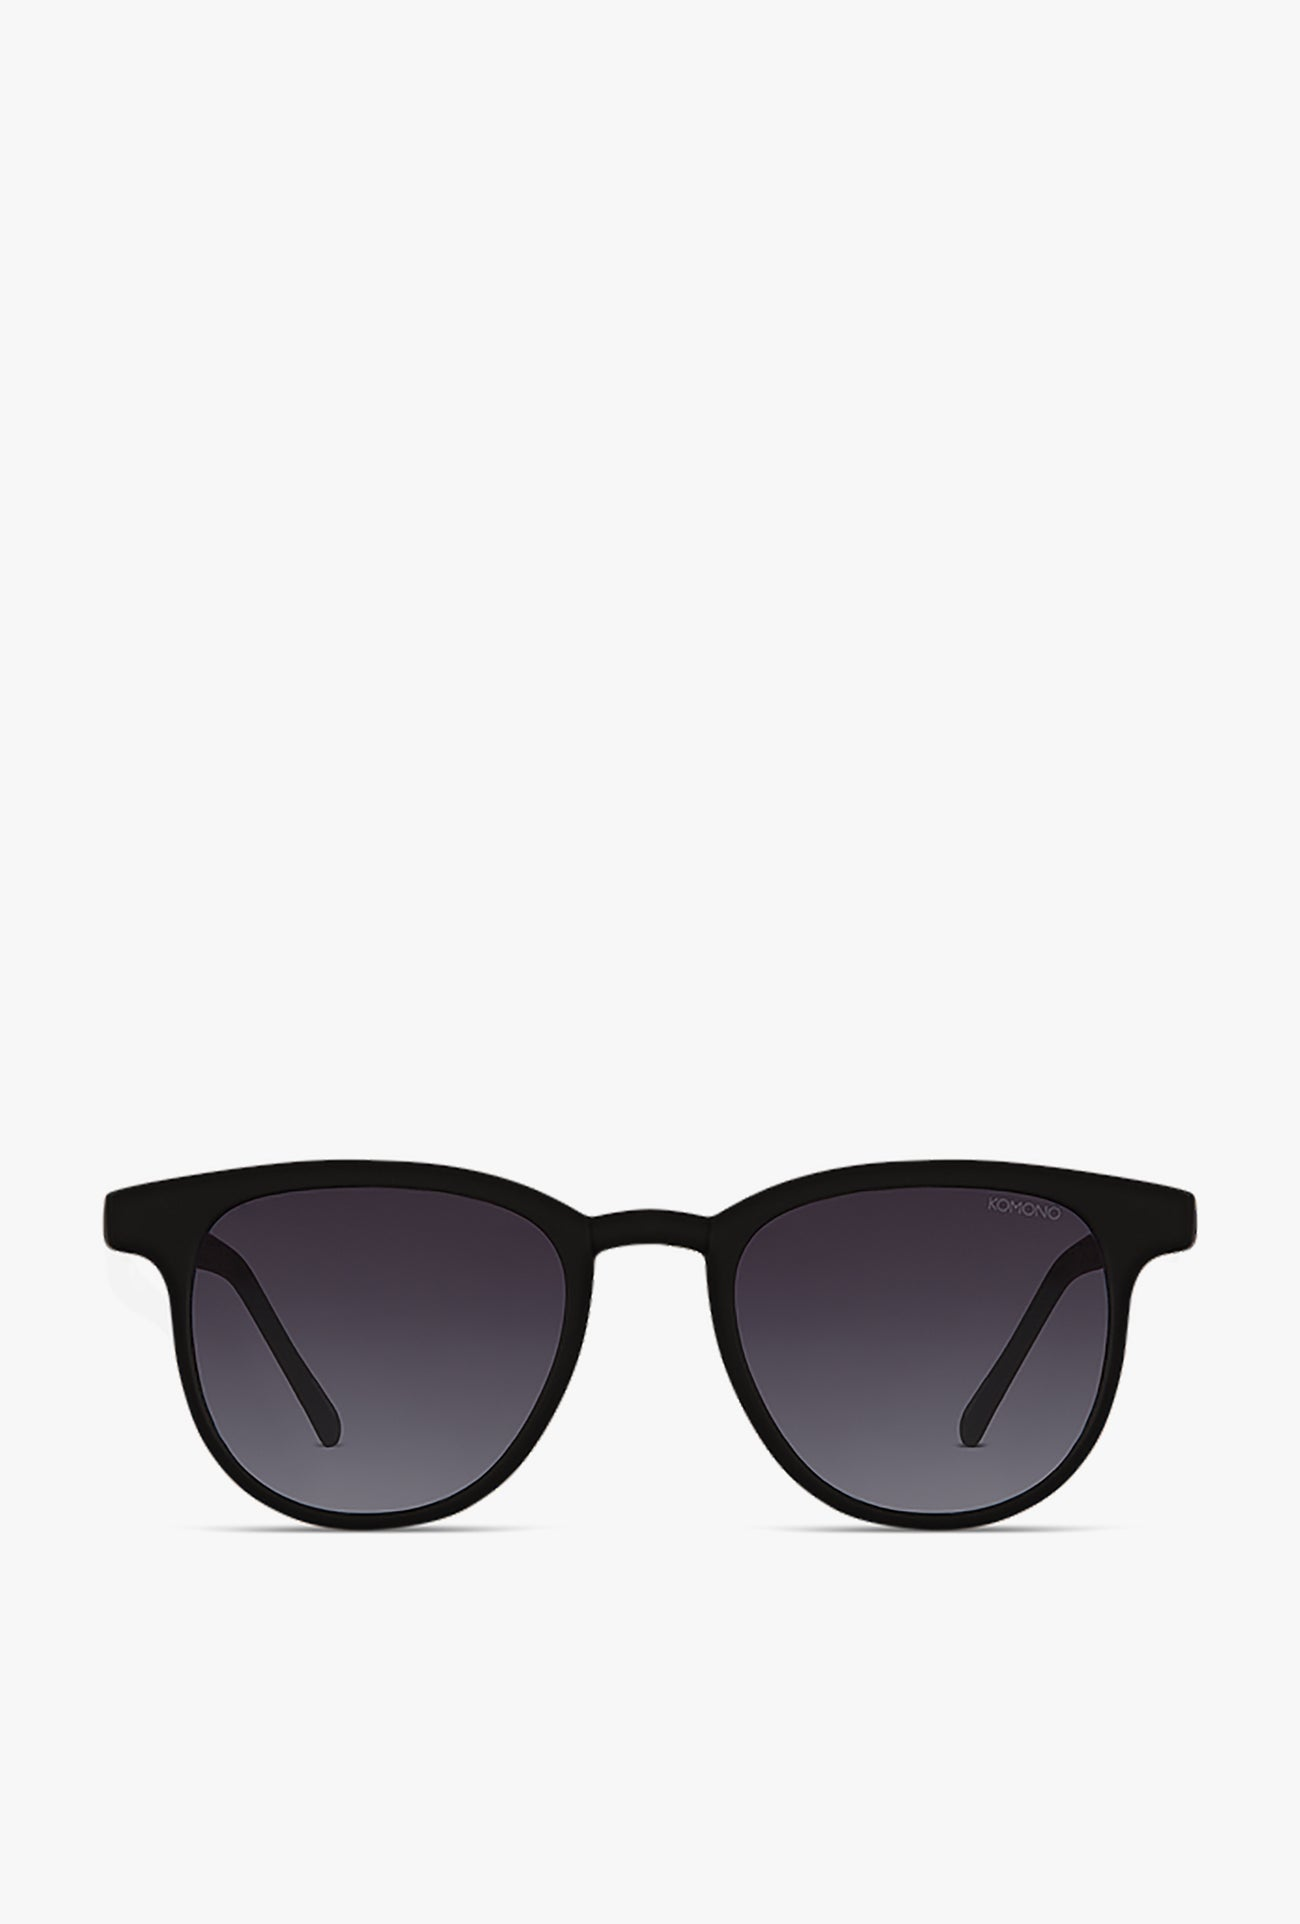 Francis Sunglasses - Carbon